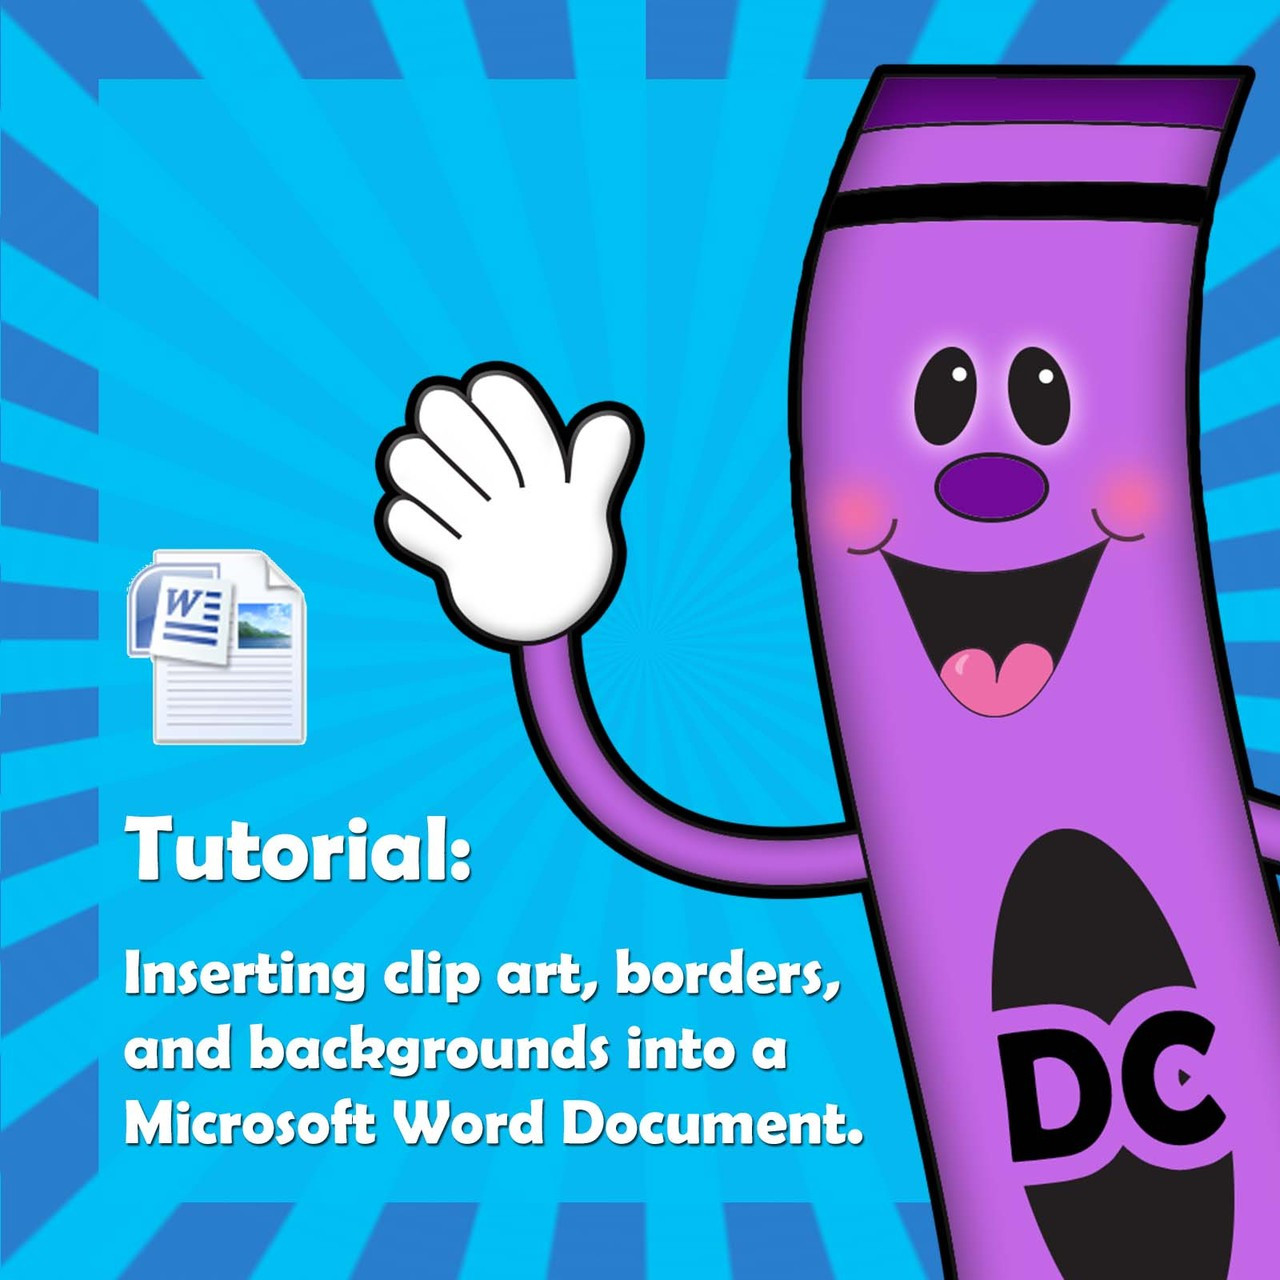 Tutorial: how to insert clip art into a Word document